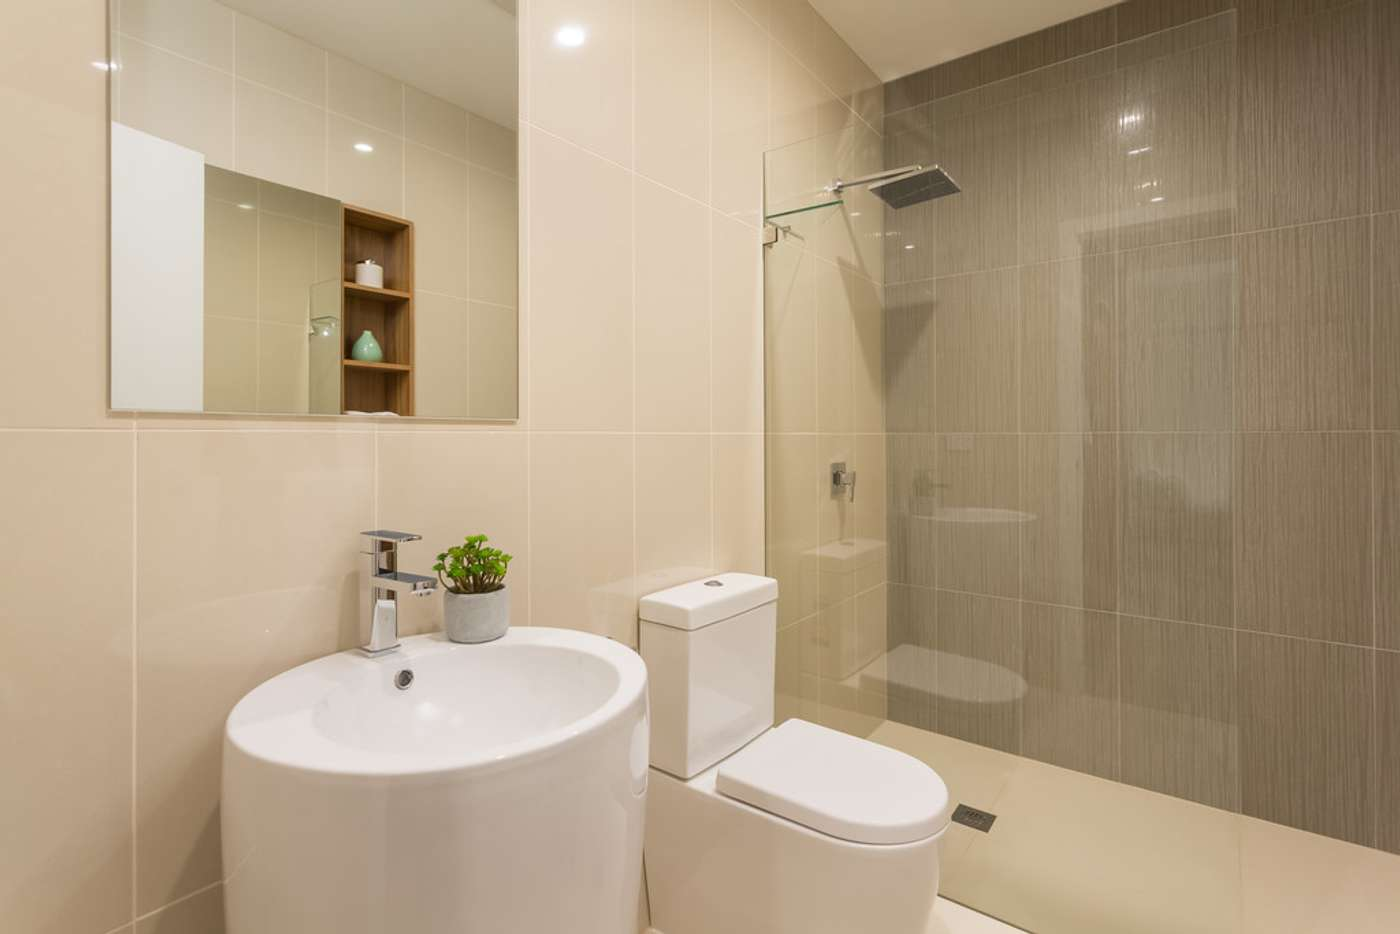 Seventh view of Homely house listing, 31 Bourton St, Merrimac QLD 4226